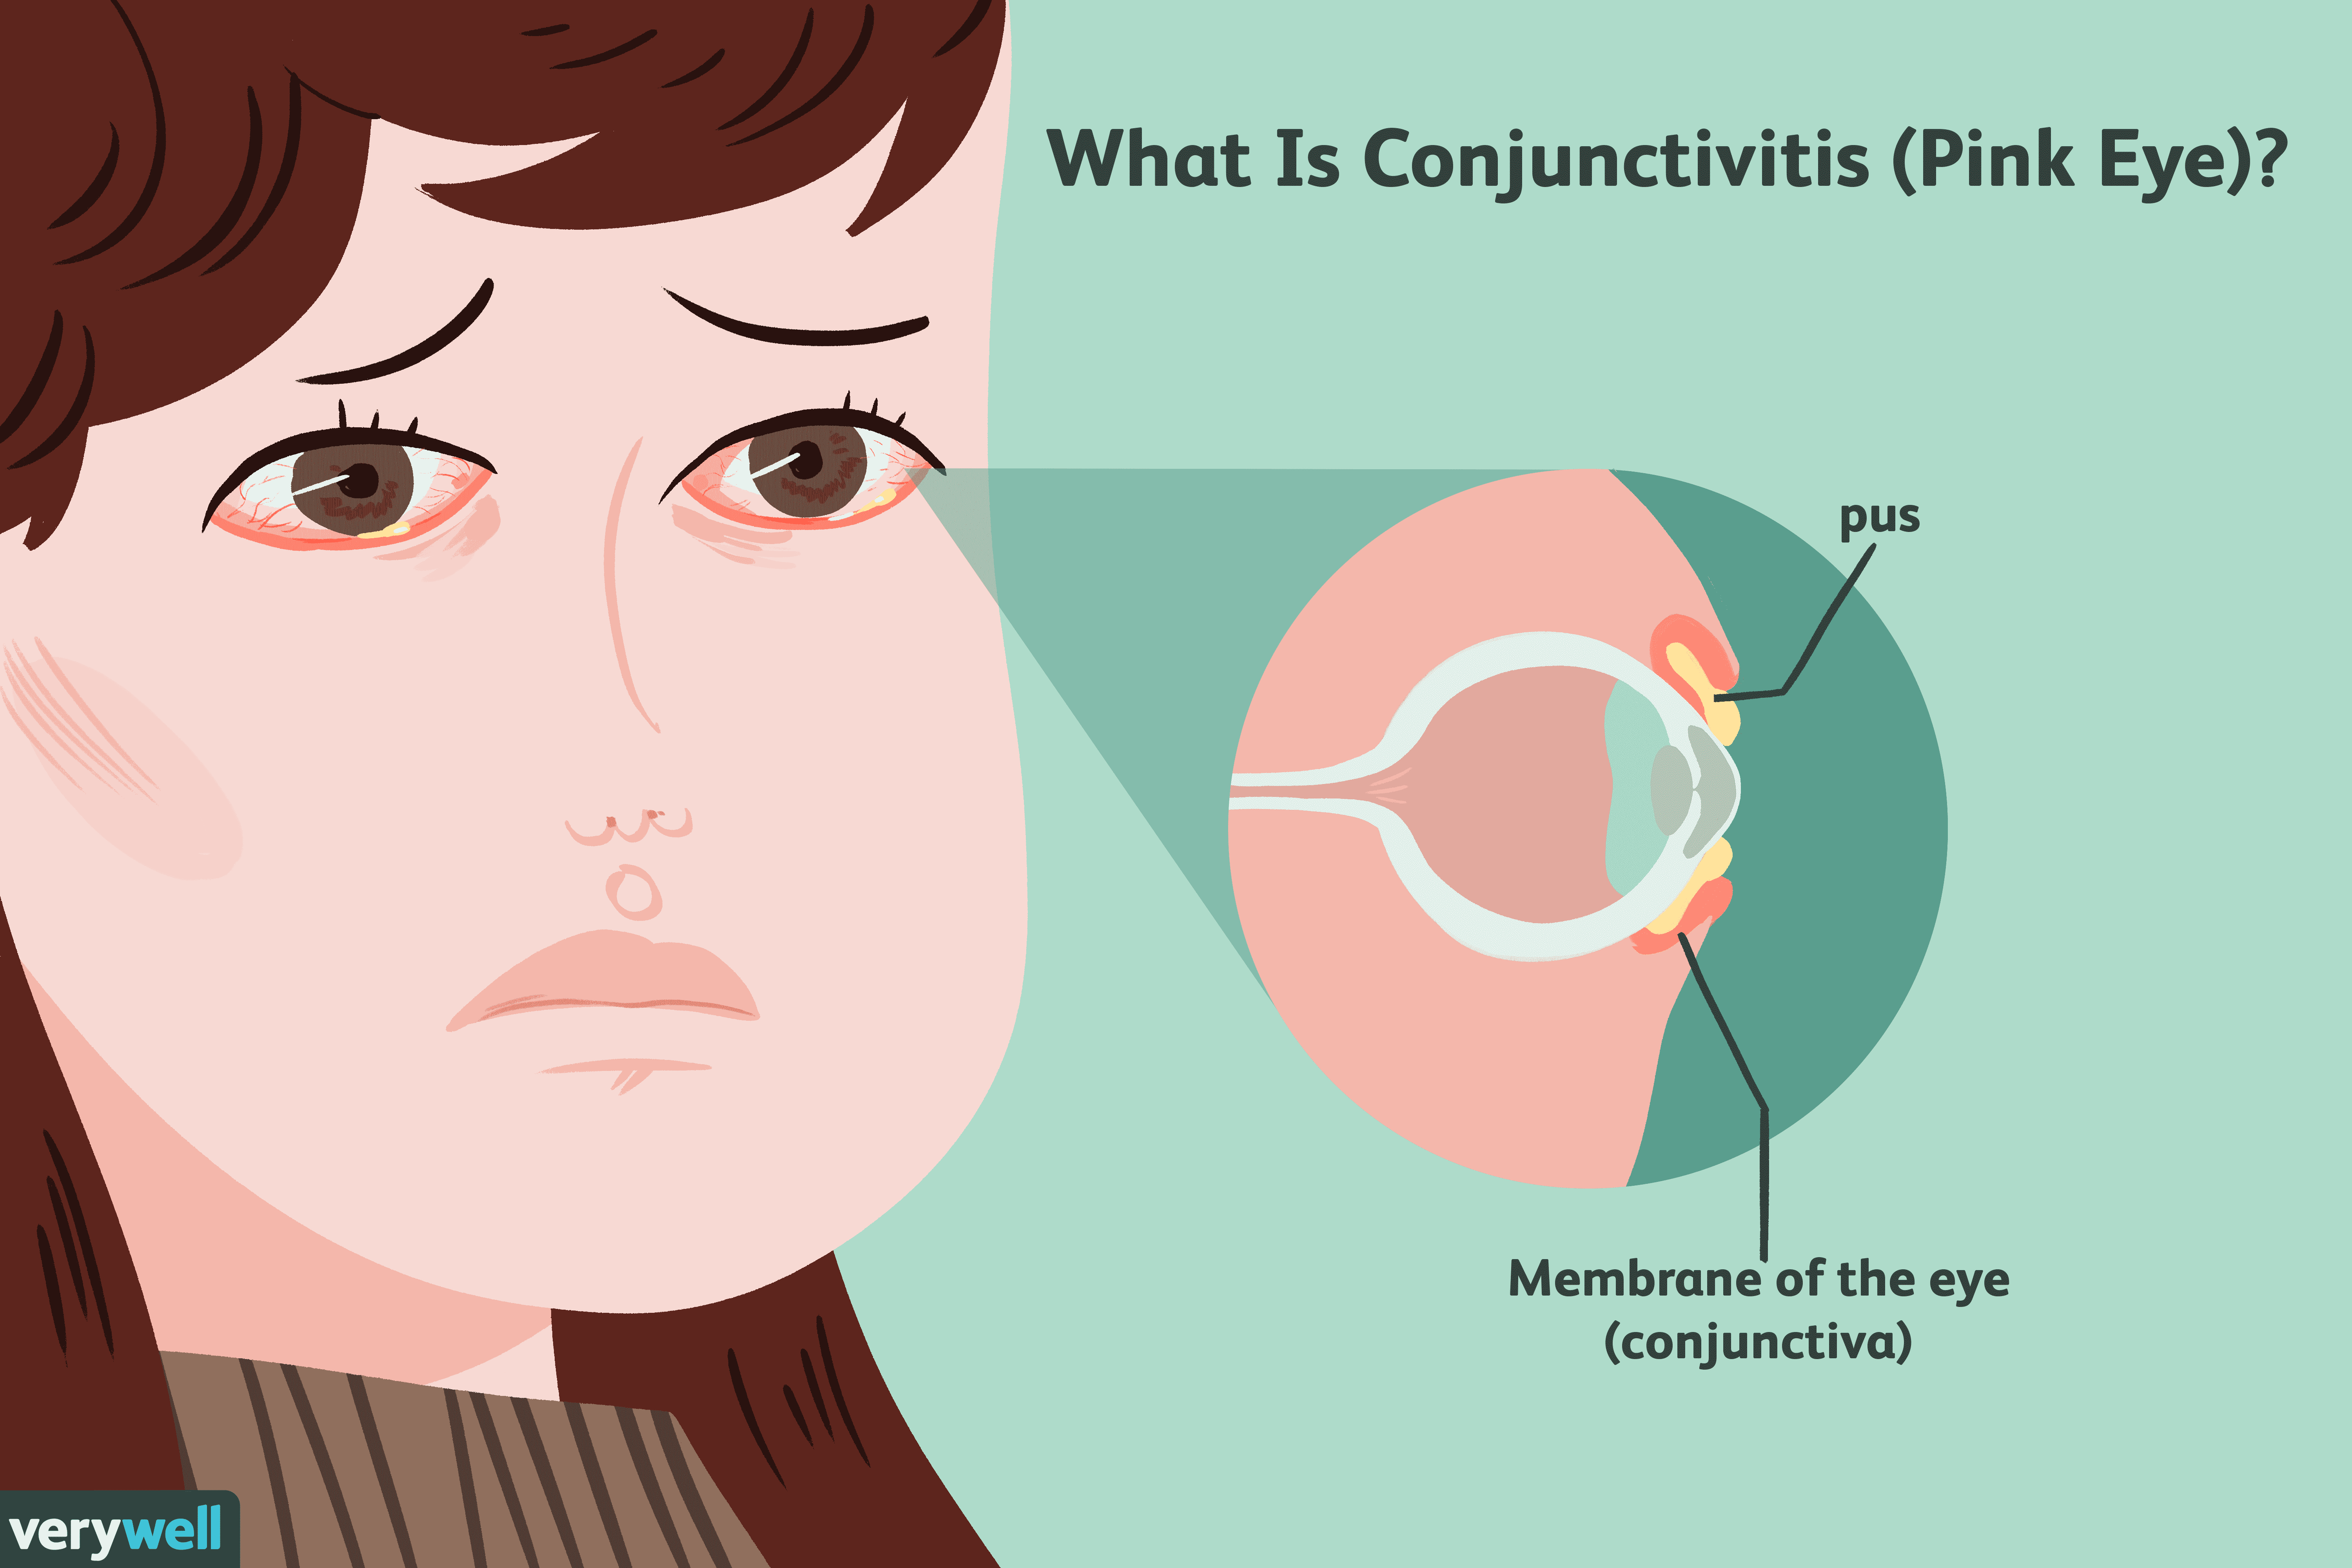 What Is Conjunctivitis (Pink Eye)?